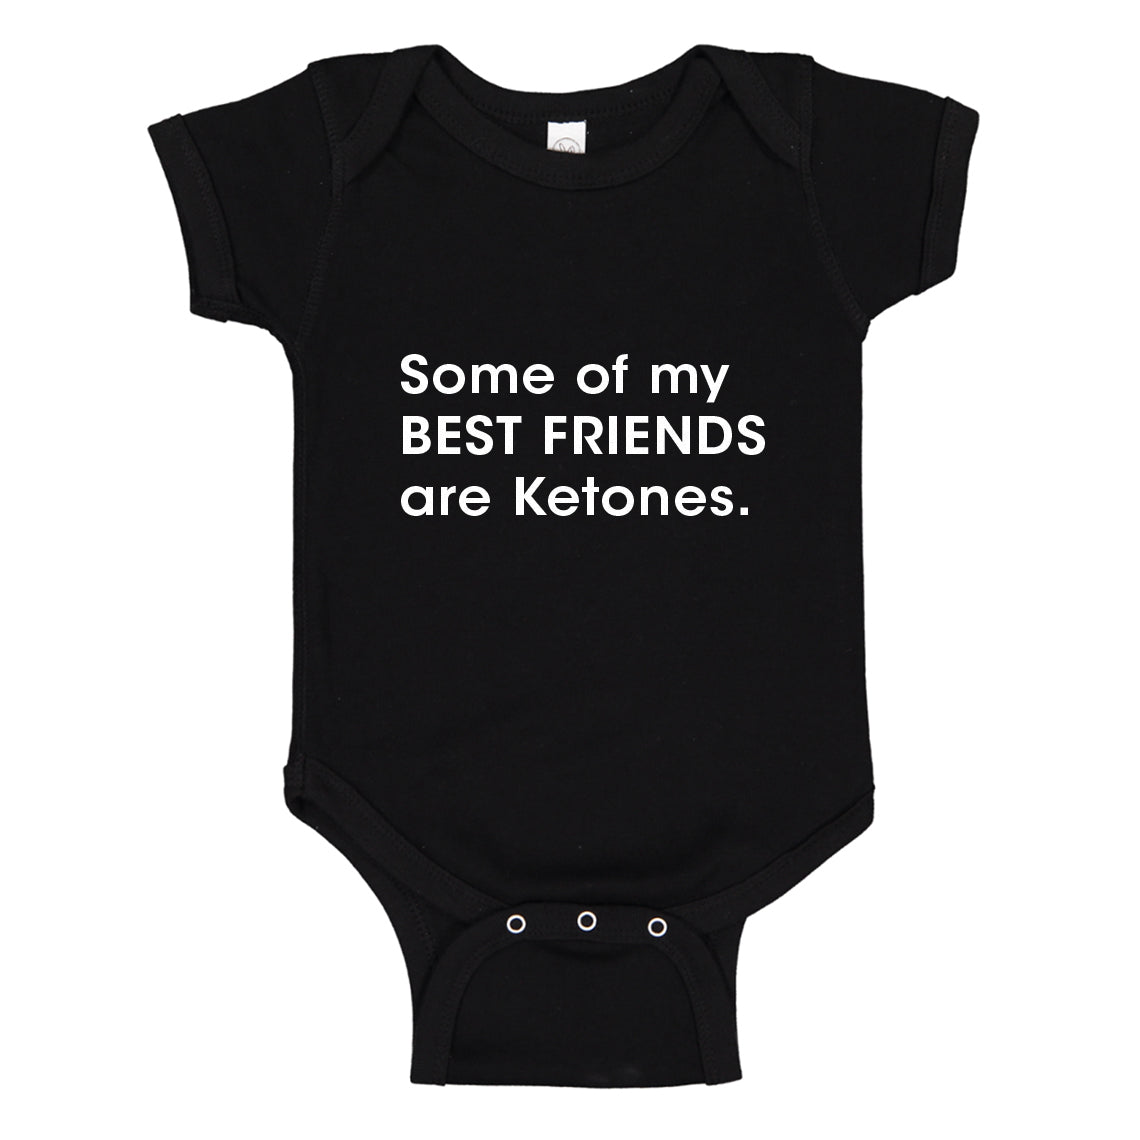 Baby Onesie Some of my Best Friends are Ketones 100% Cotton Infant Bodysuit